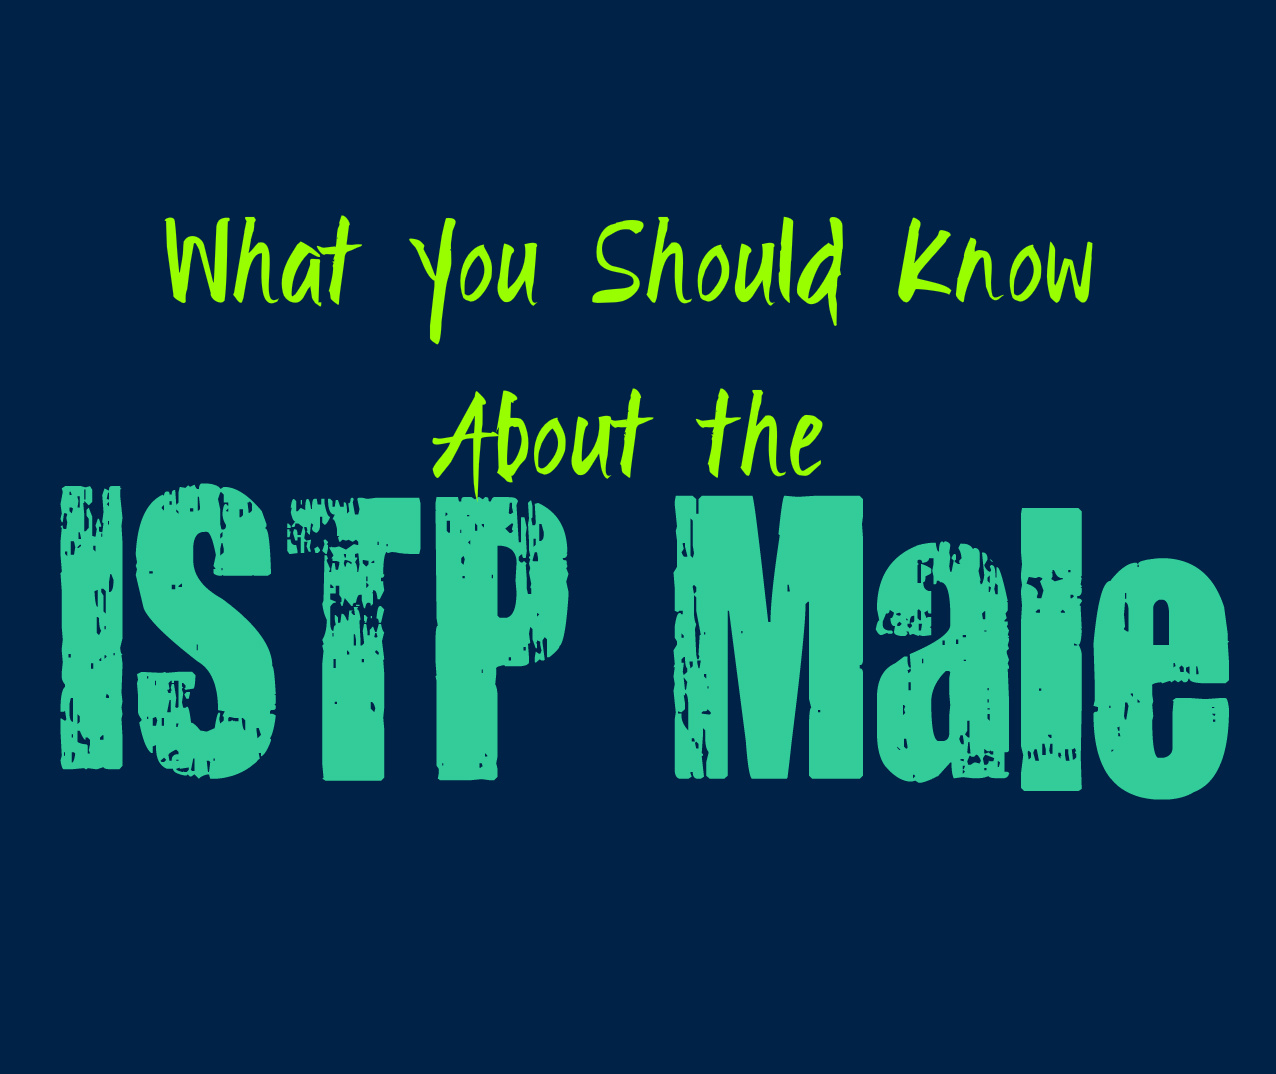 What you should know about the male istp personality for Haute you should know